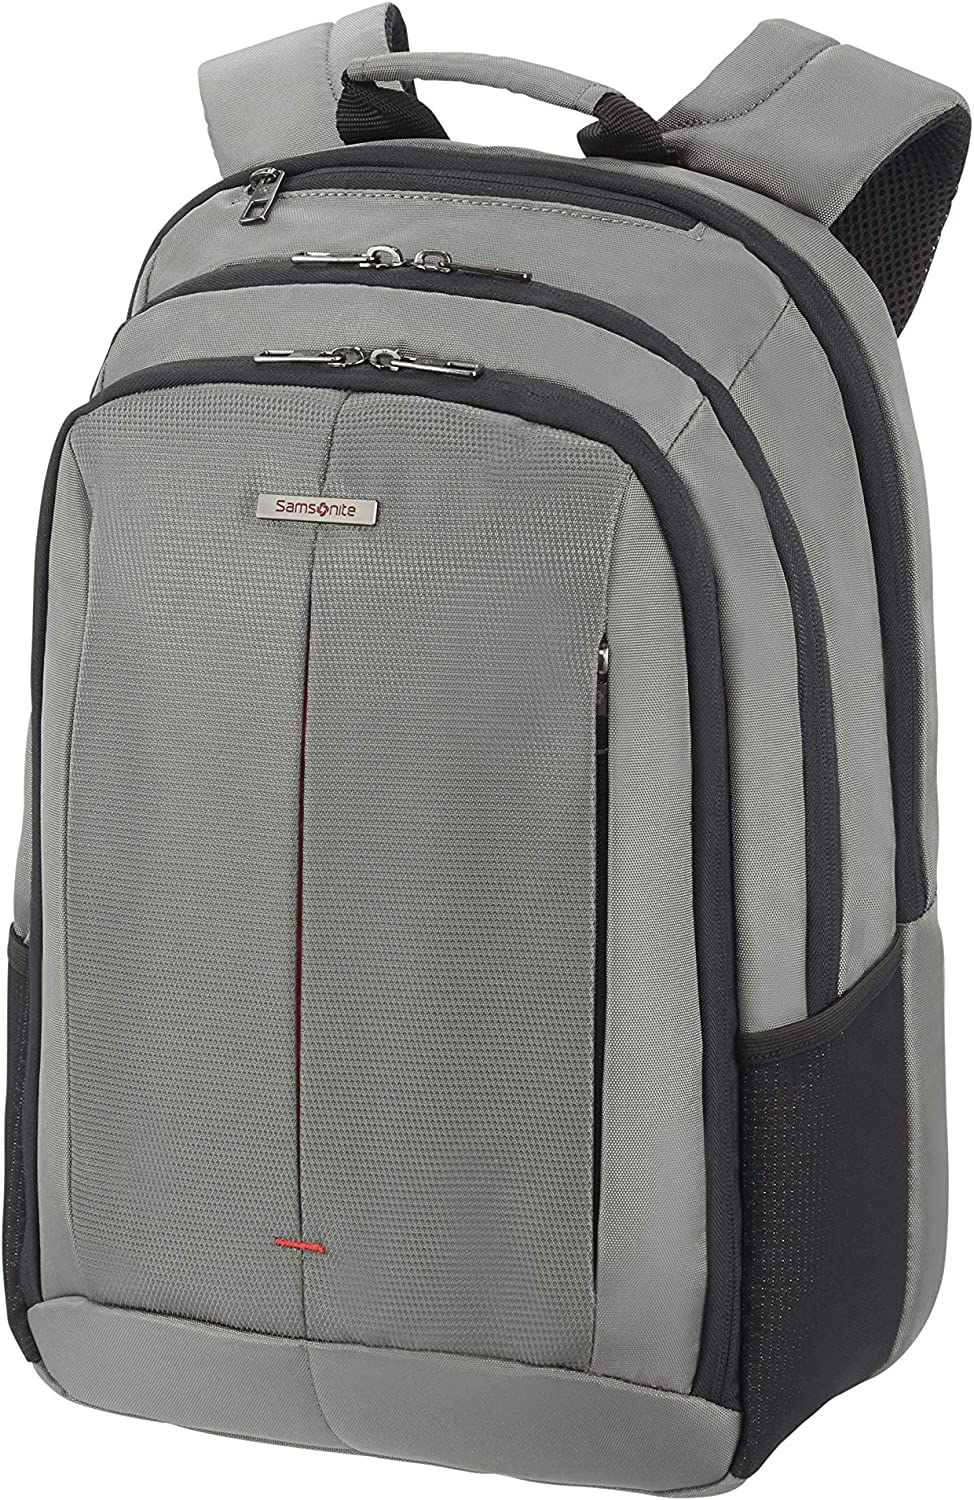 Samsonite Lapt.Backpack M 15.6